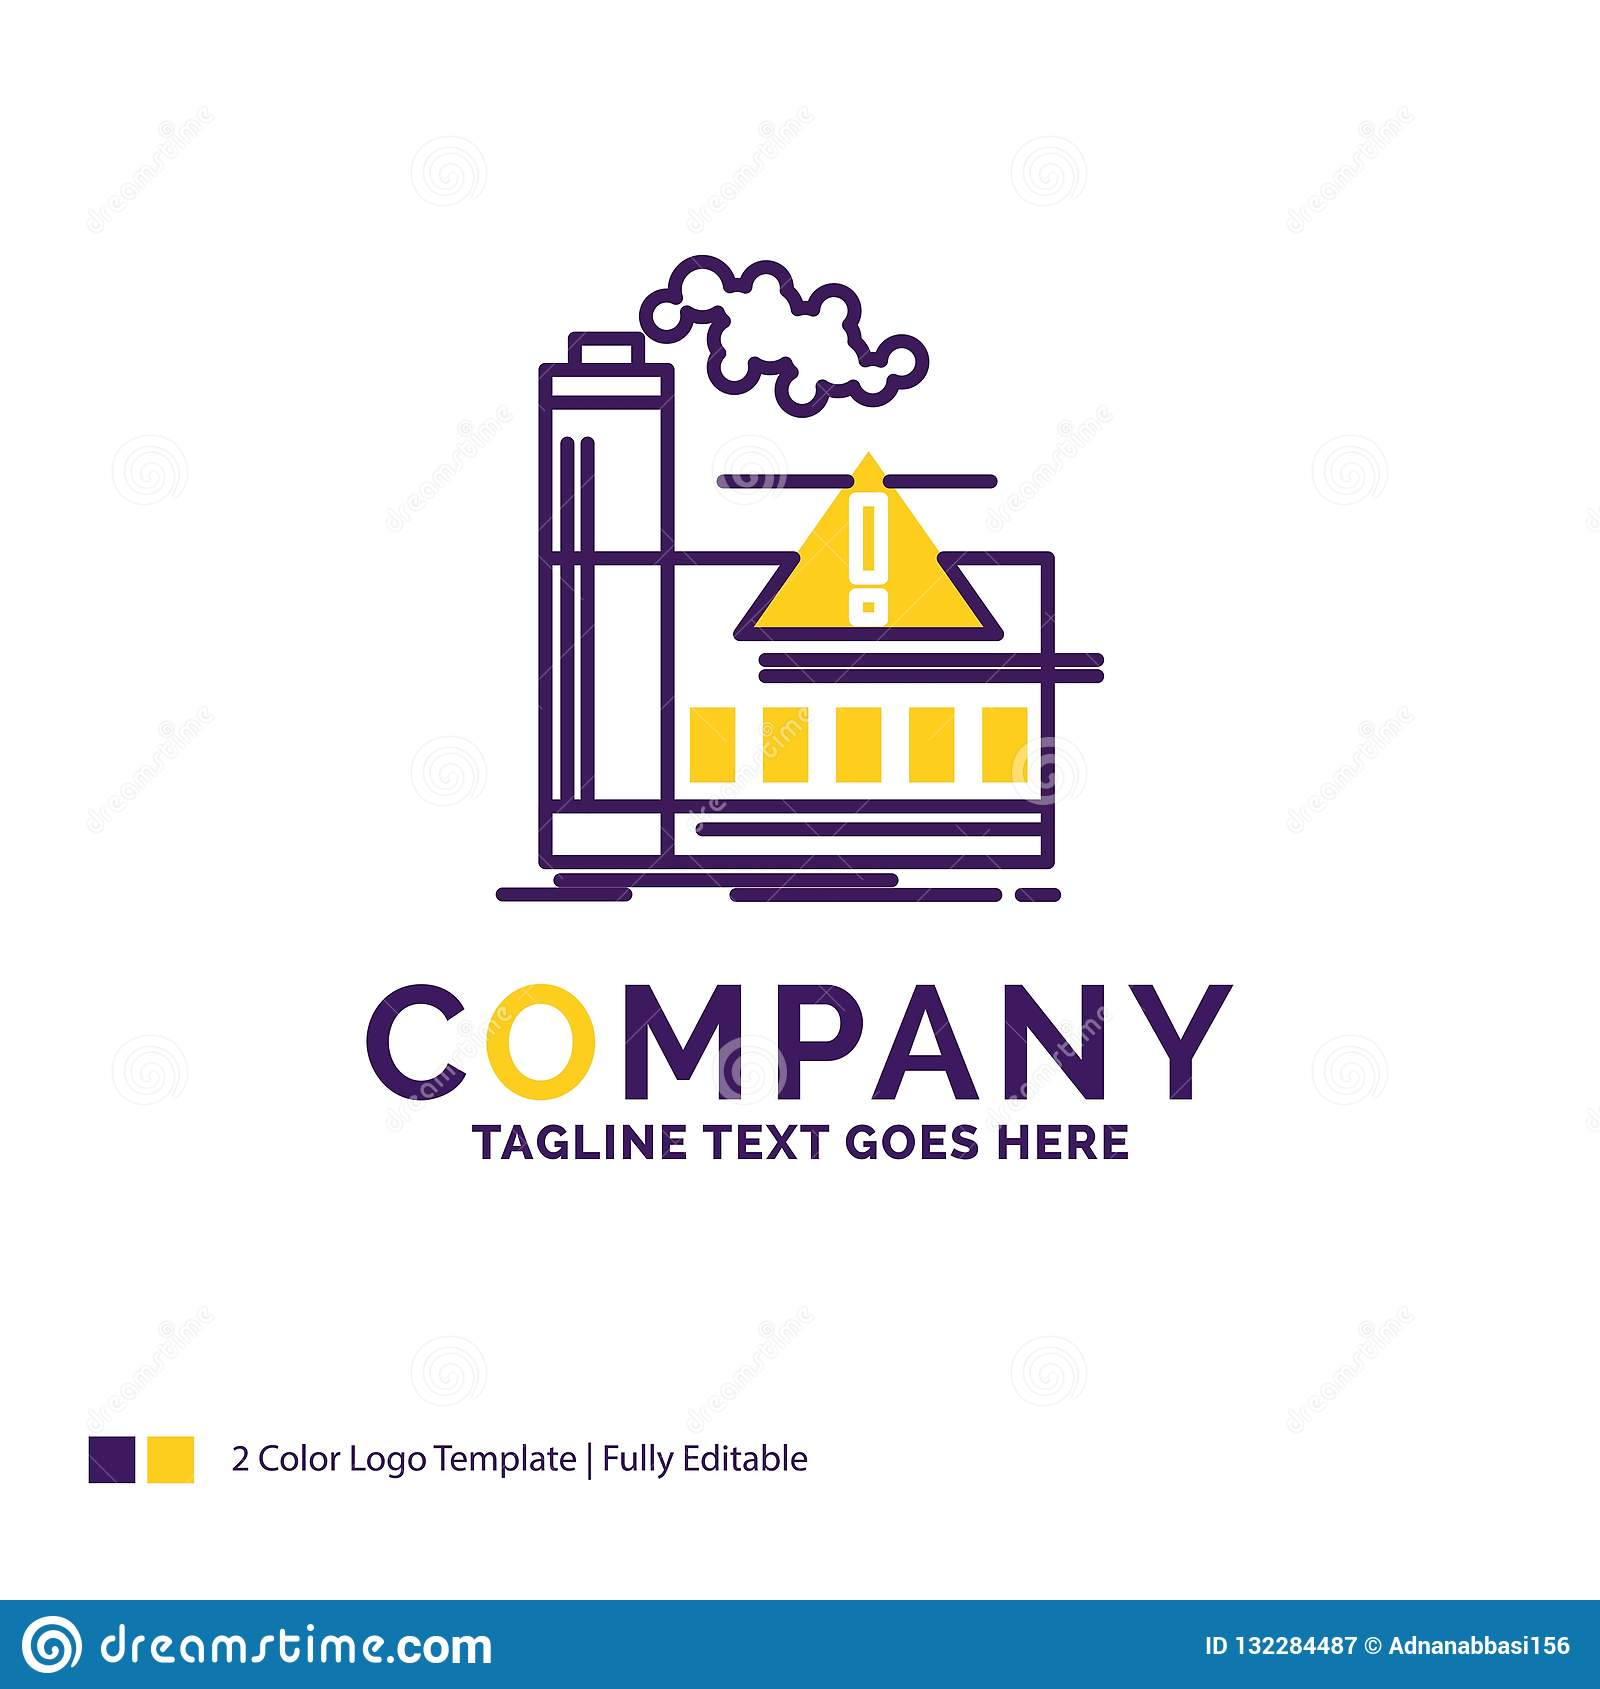 Company Name Logo Design For pollution, Factory, Air, Alert, ind